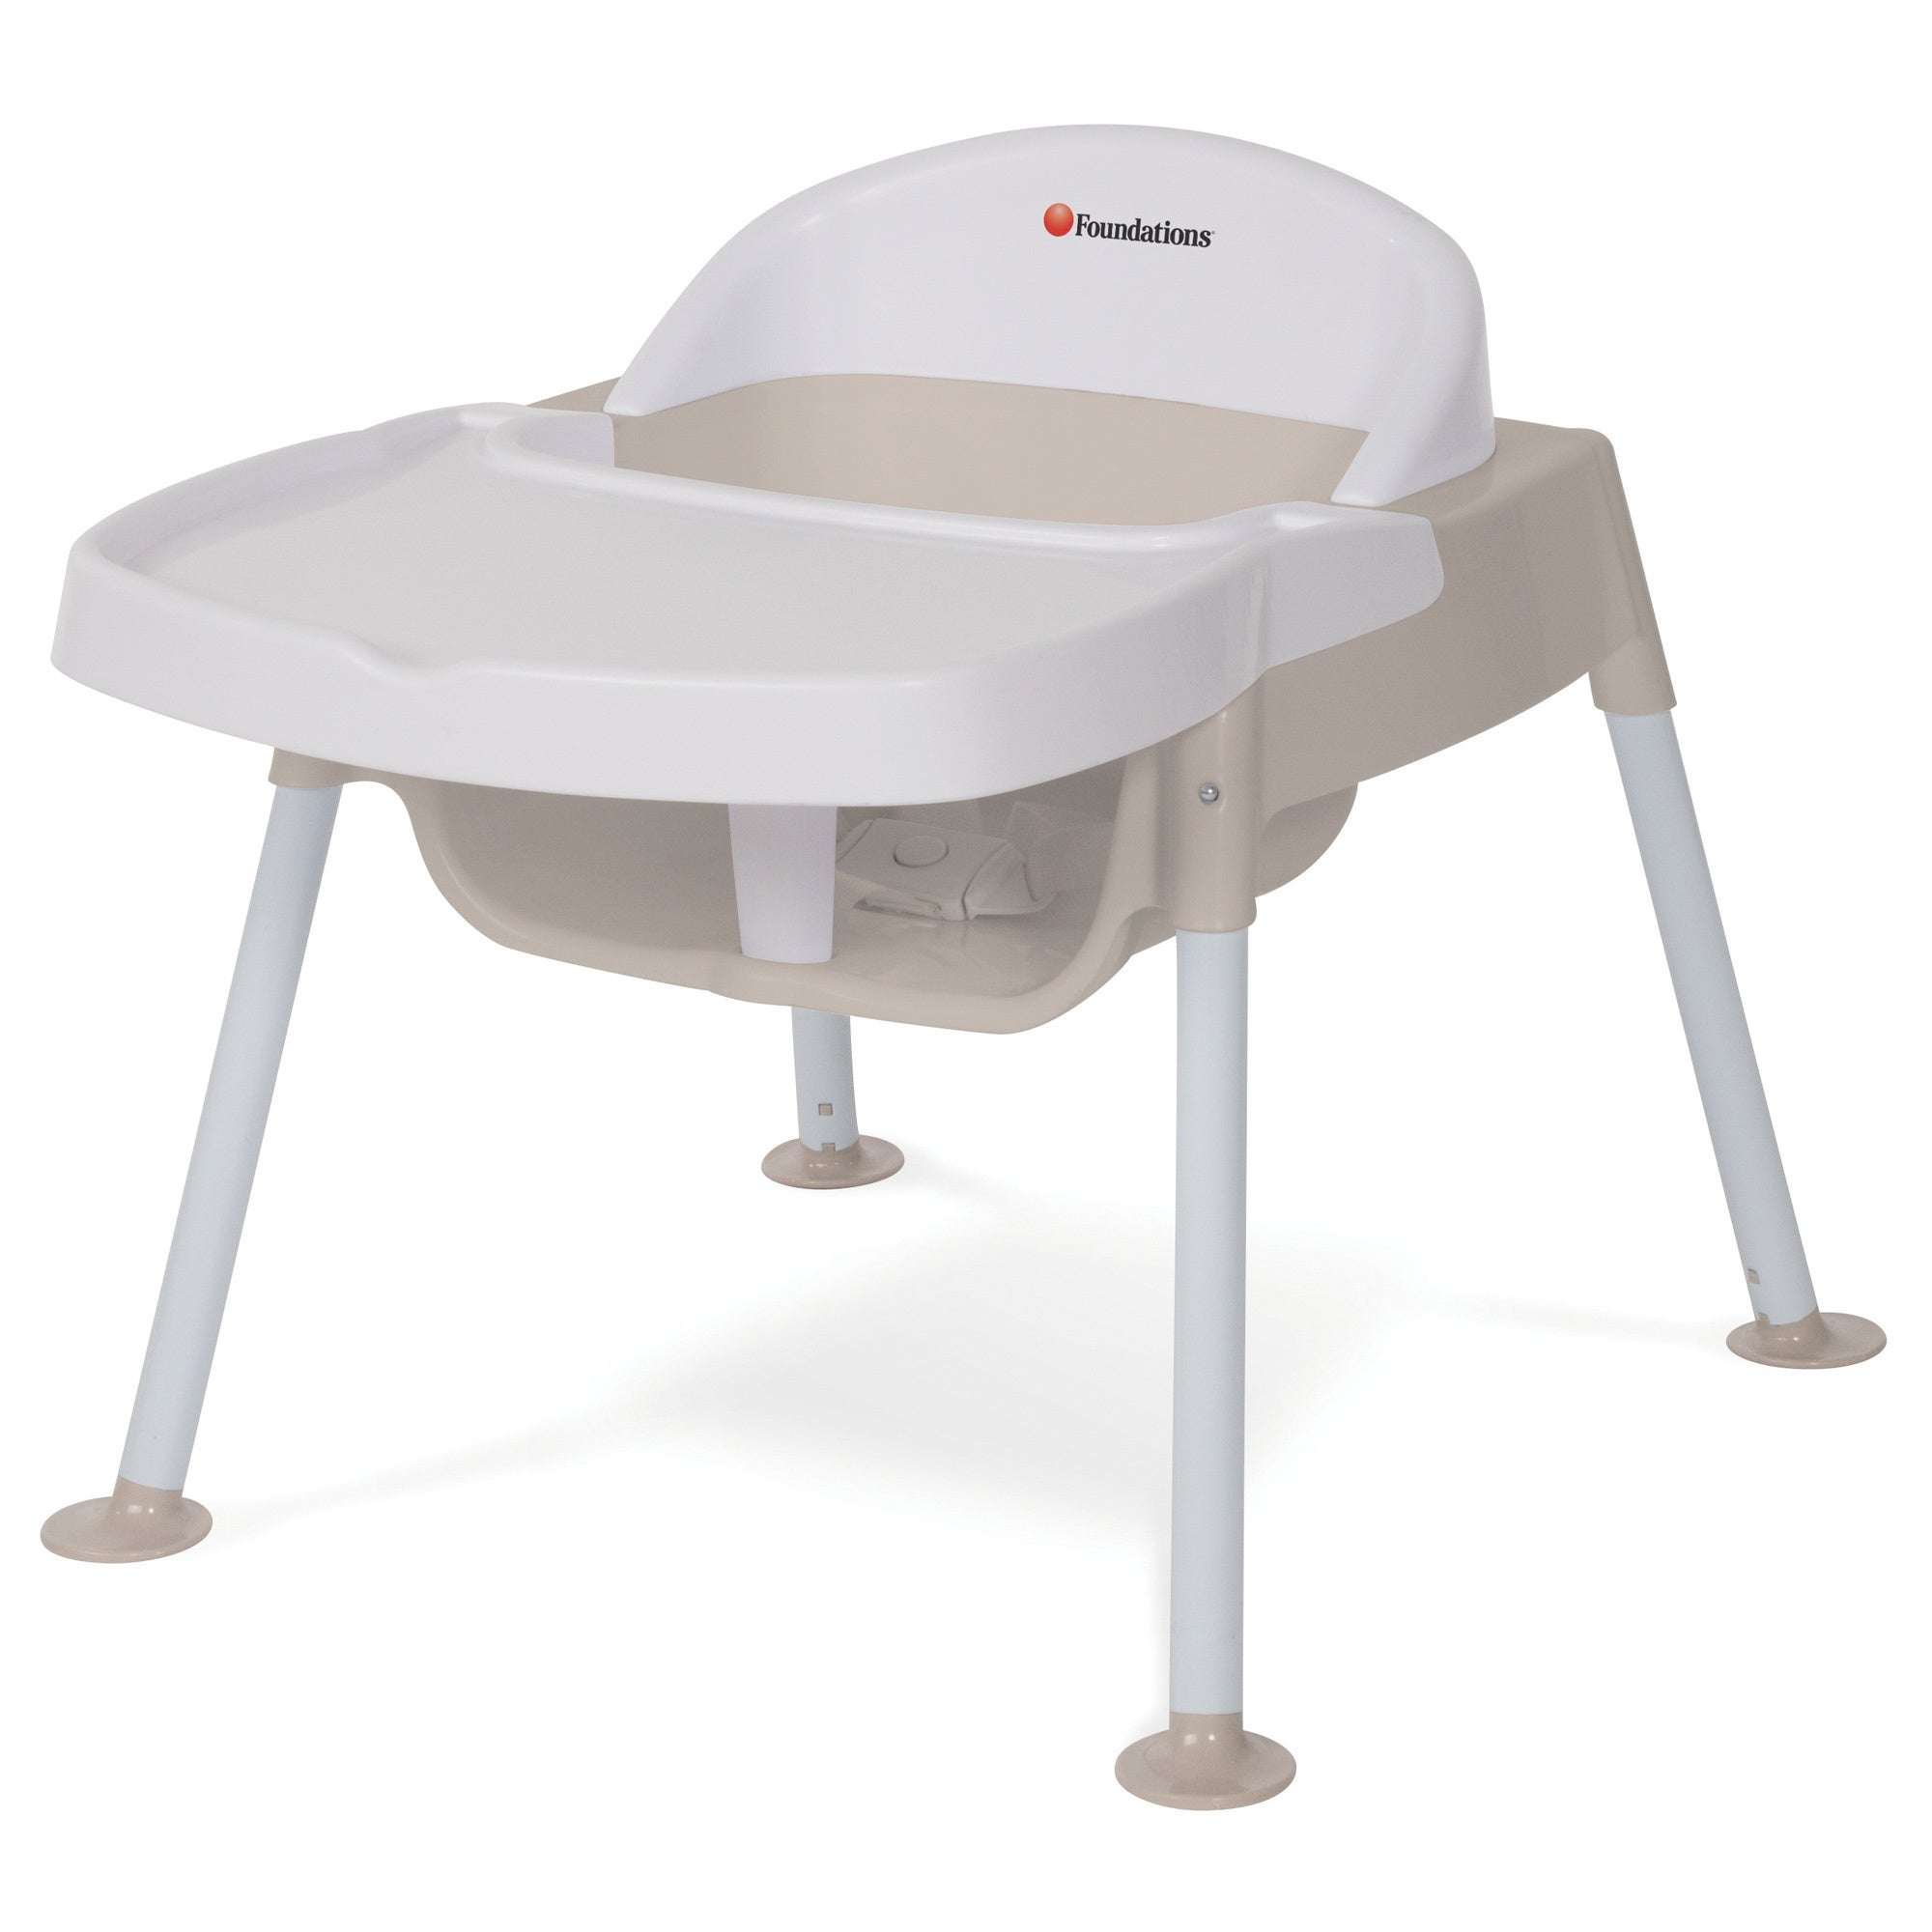 Foundations 9-inch Secure Sitter High Chair (9 Inch), White